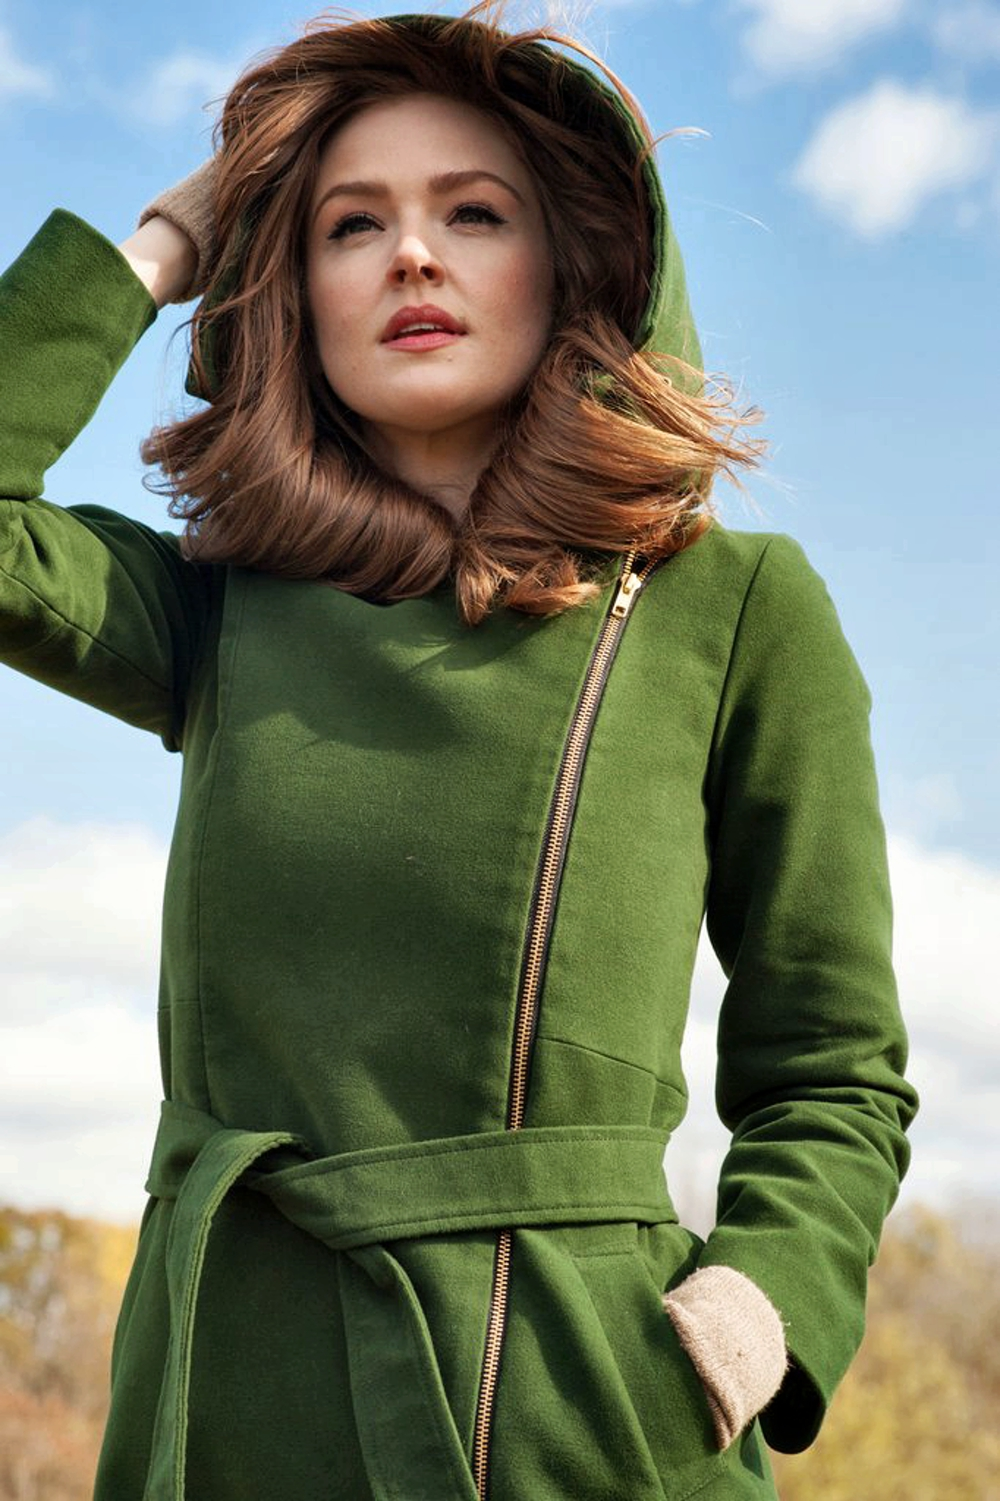 Eco-Friendly Autumn Jackets For Women - The Emily Future green